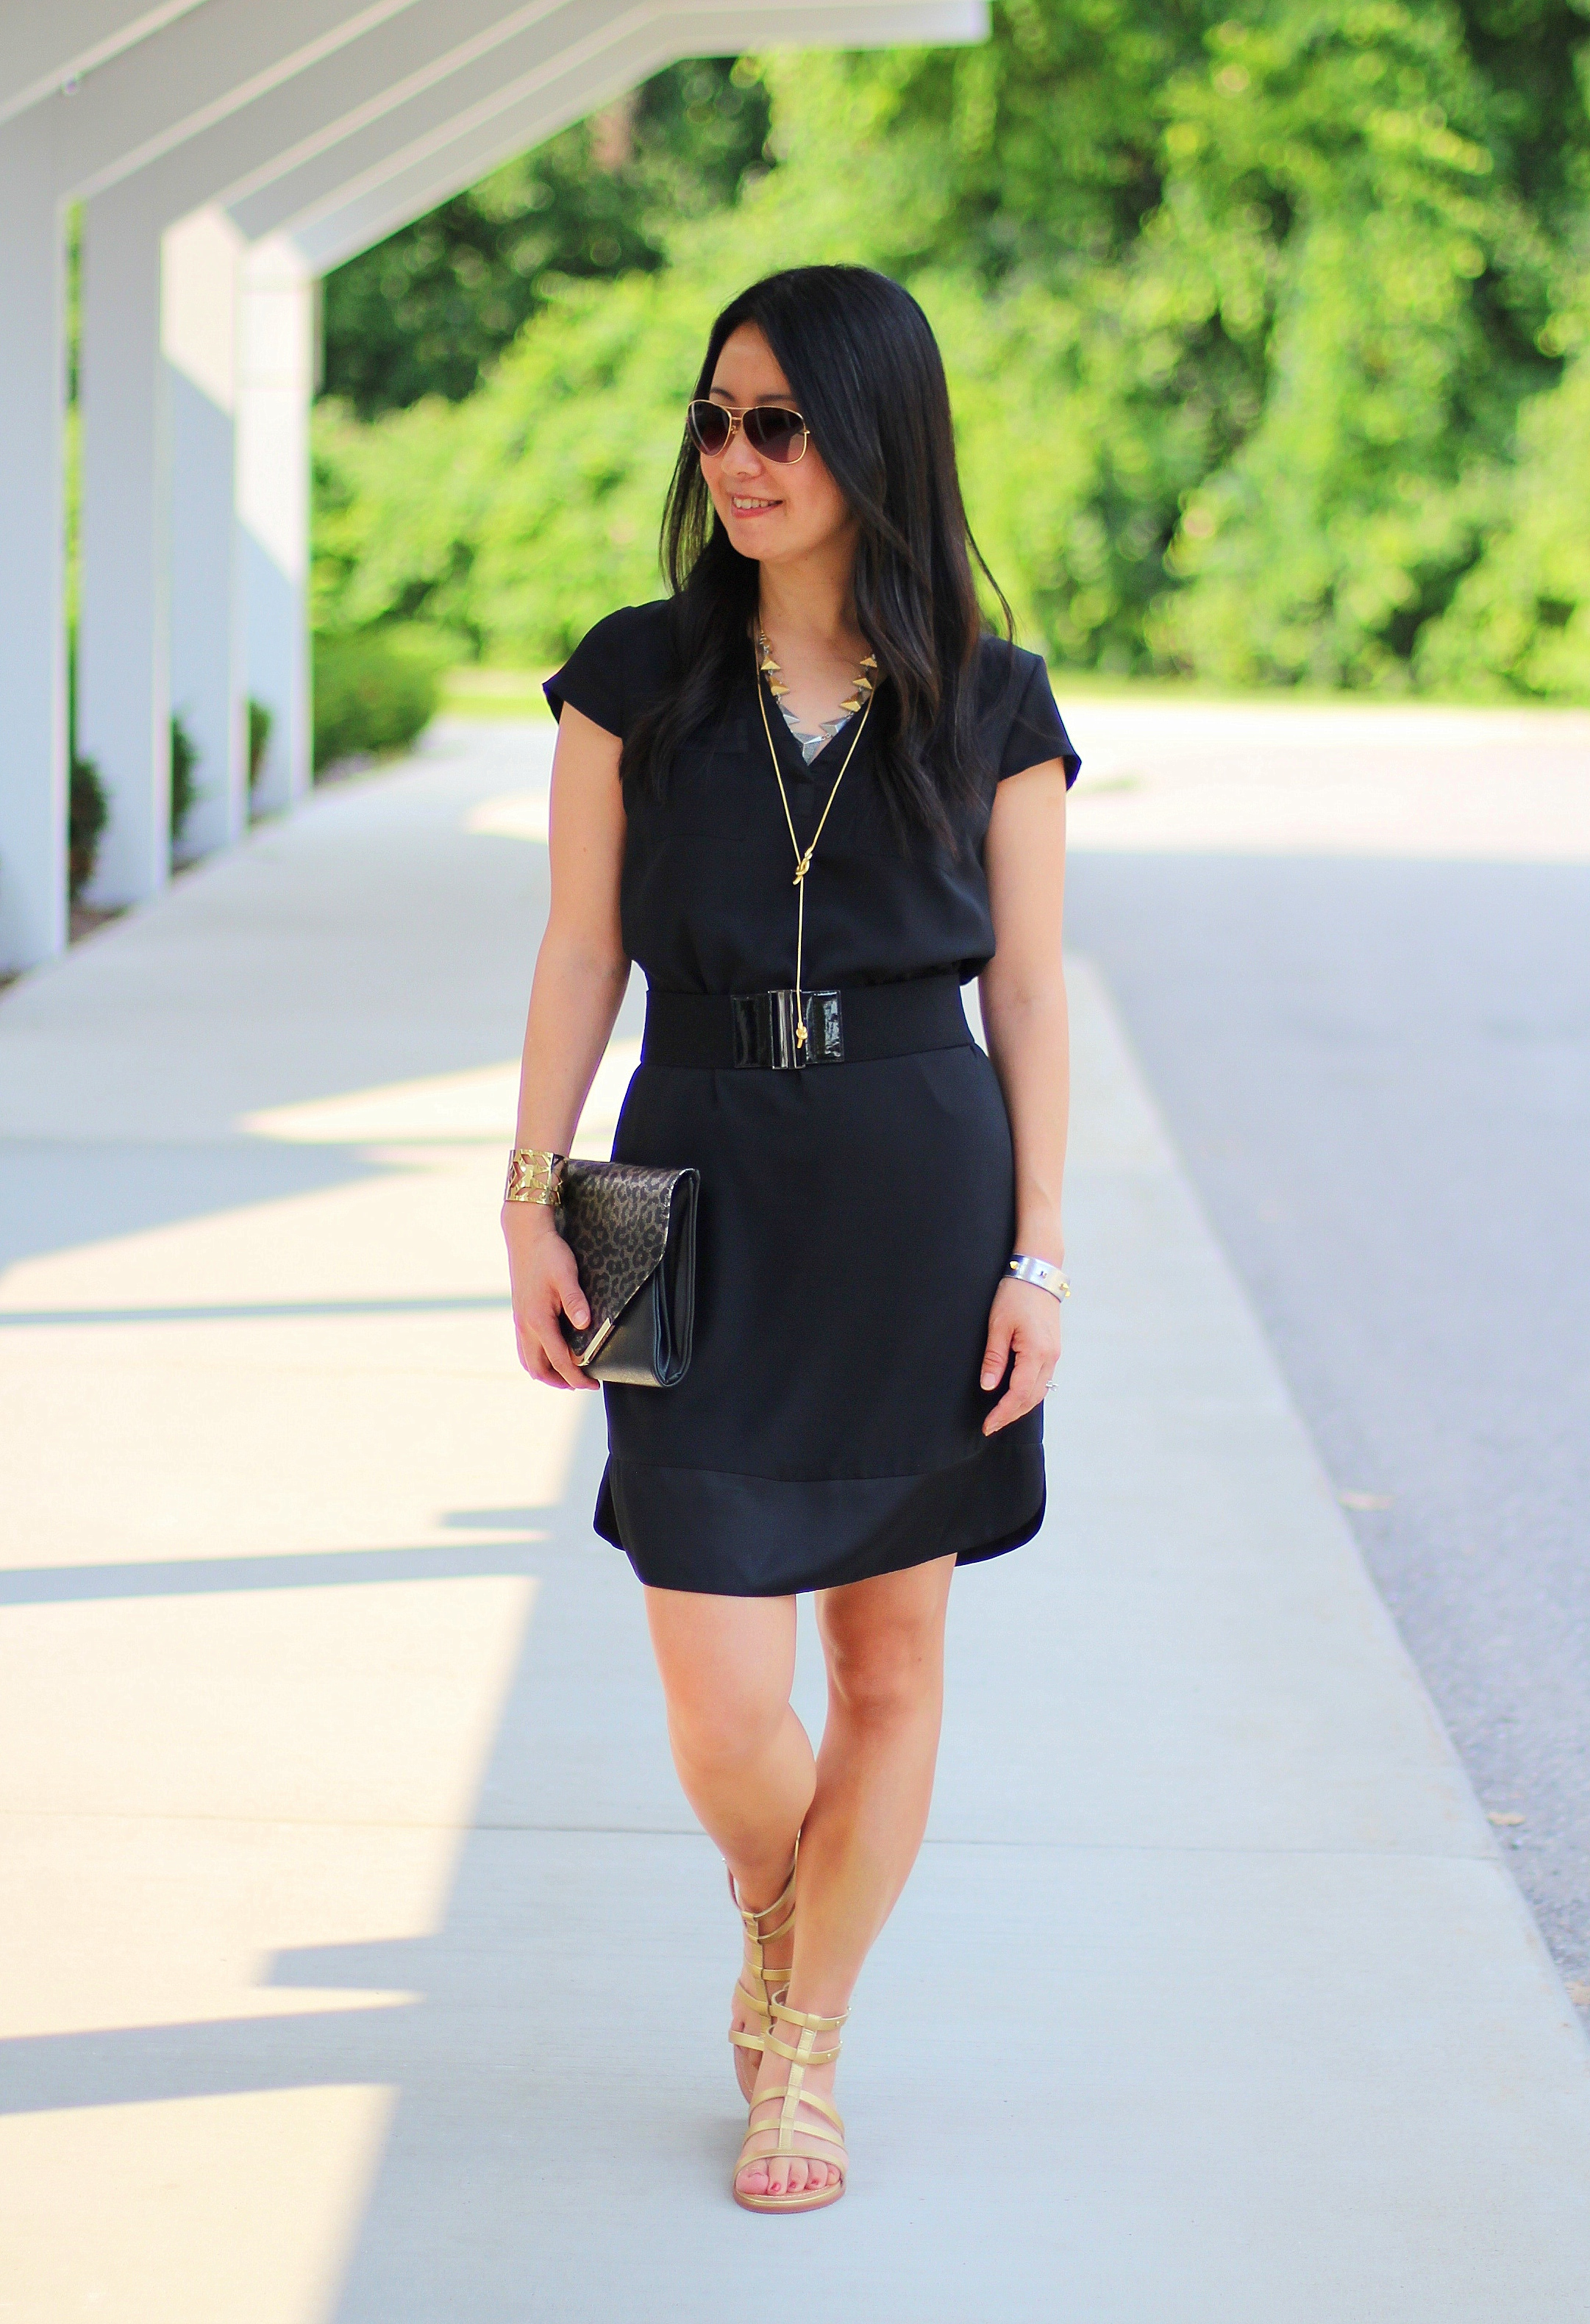 Outfit Highlight: Black and Gold